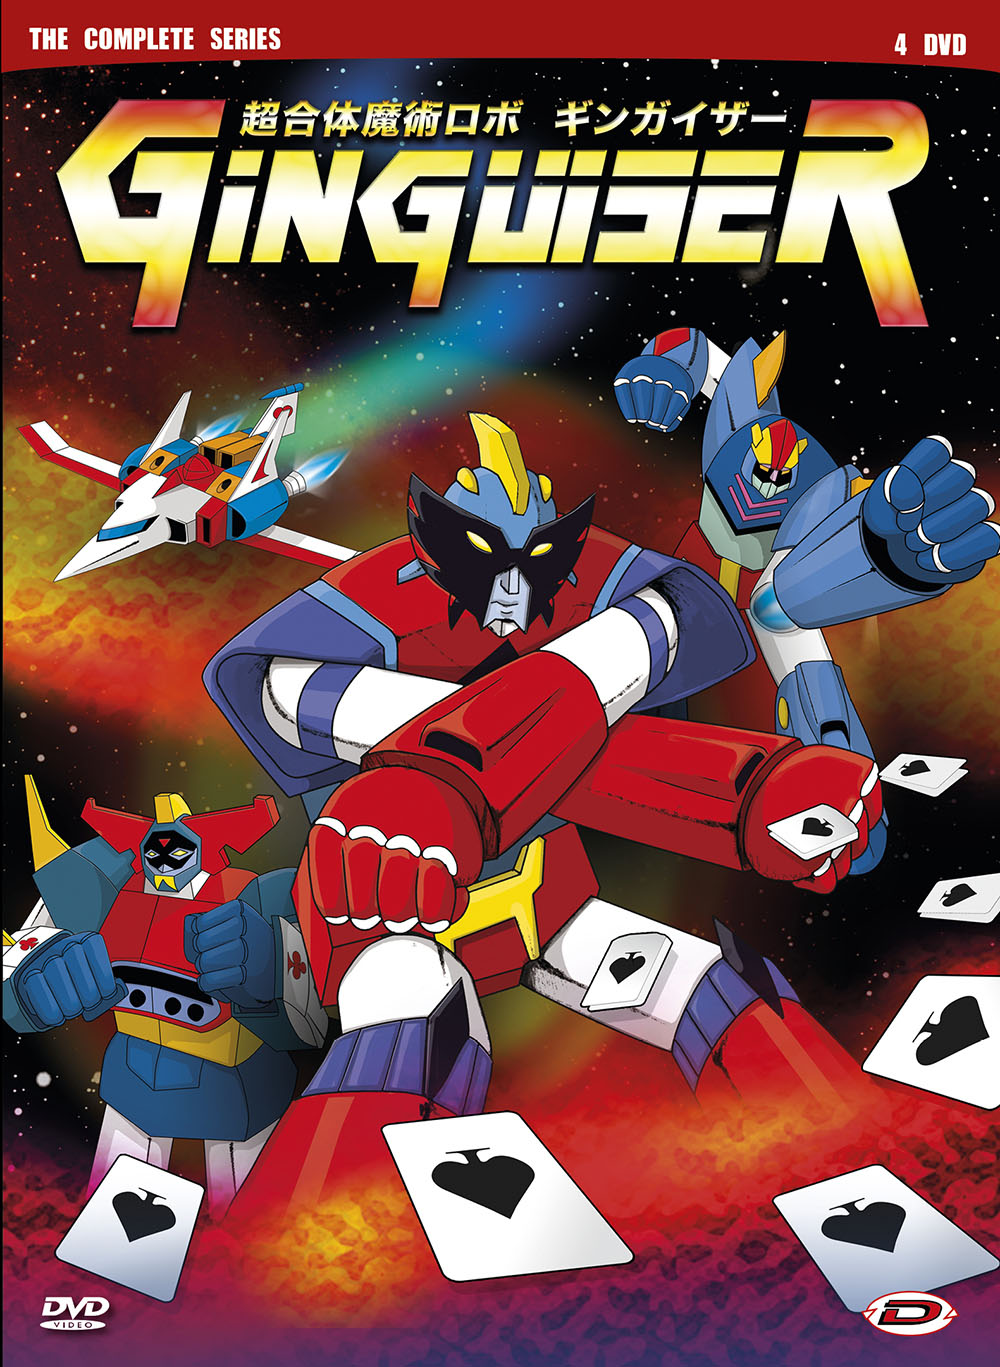 COF.GINGUISER THE COMPLETE SERIES (EPS. 01-26) (4 DVD) (DVD)